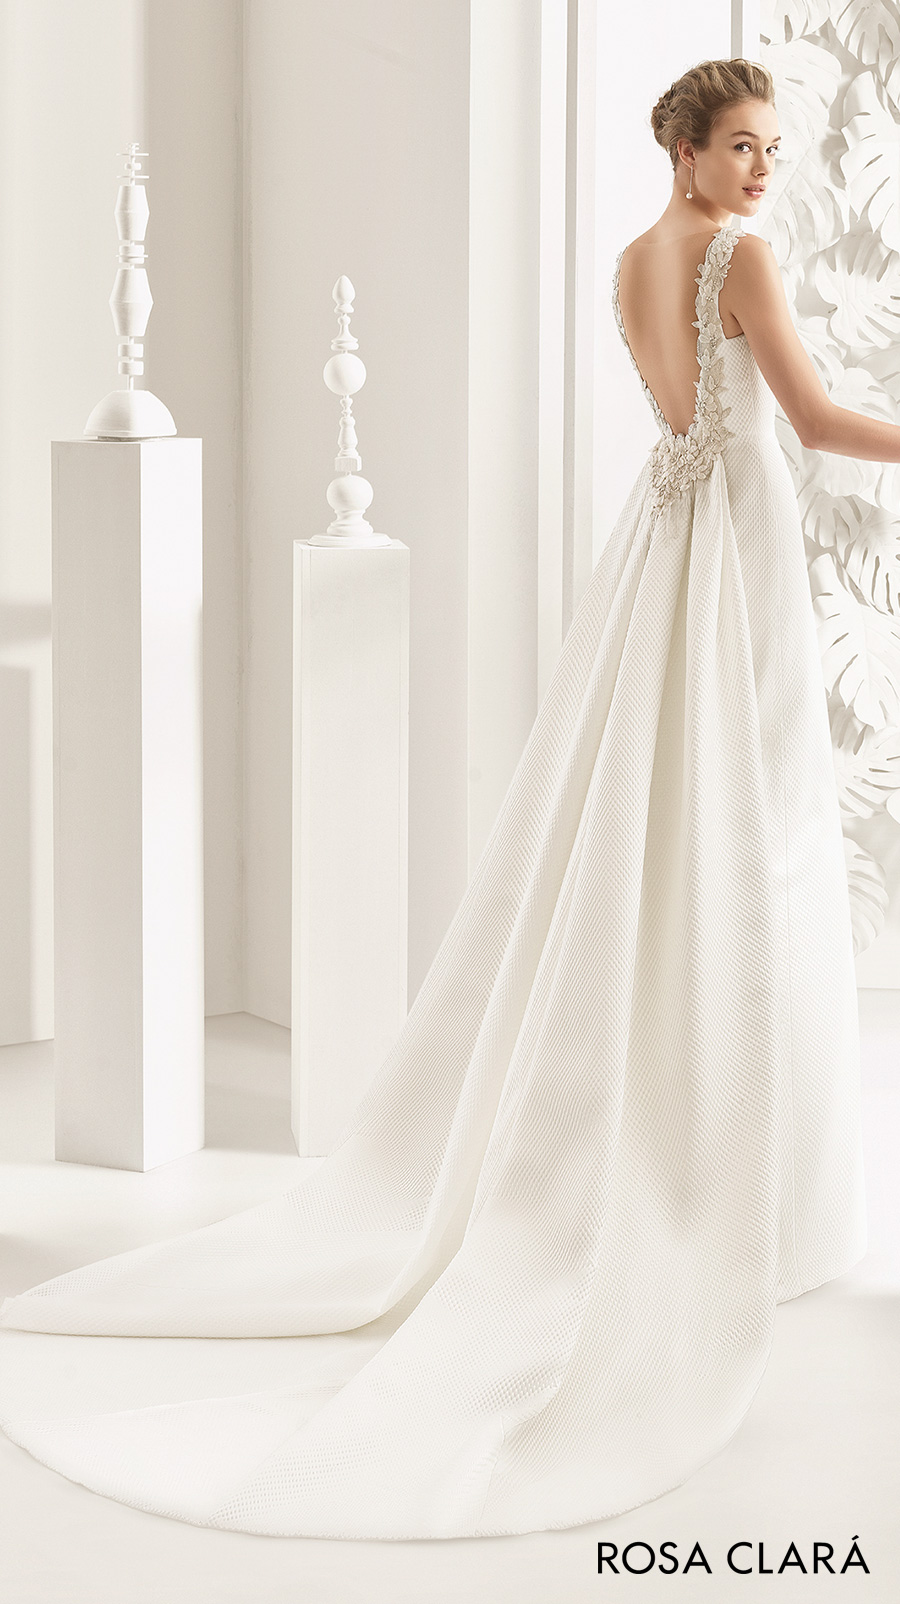 rosa clara 2017 bridal sleeveless bateau neckline simple clean elegant sheath wedding dress open low back chapel train (navas)  bv